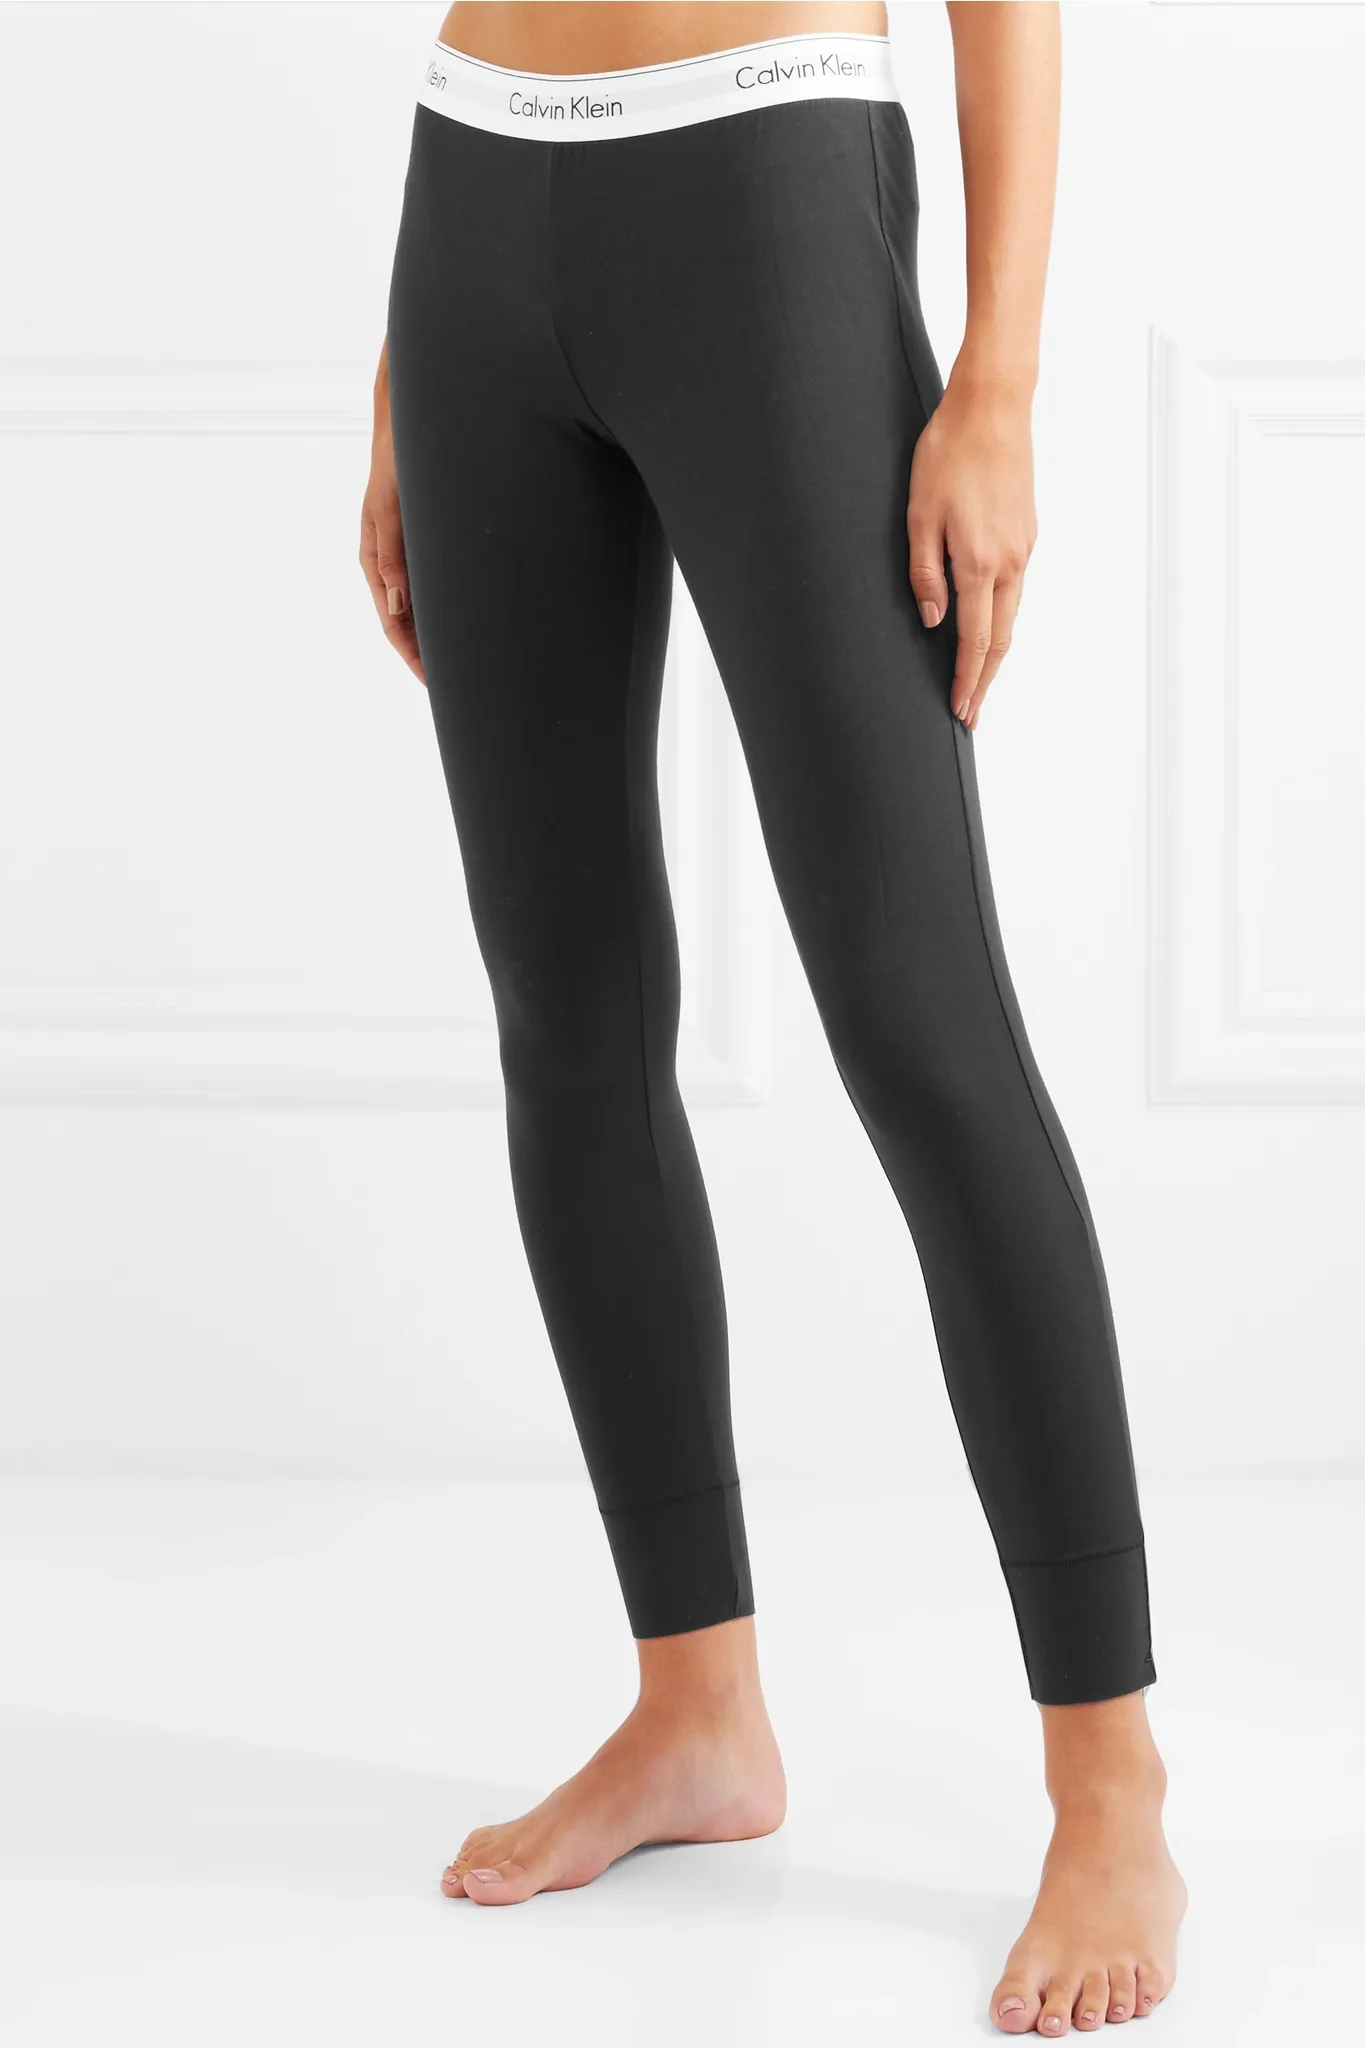 Super Soft Leggings That Are Insanely Comfortable